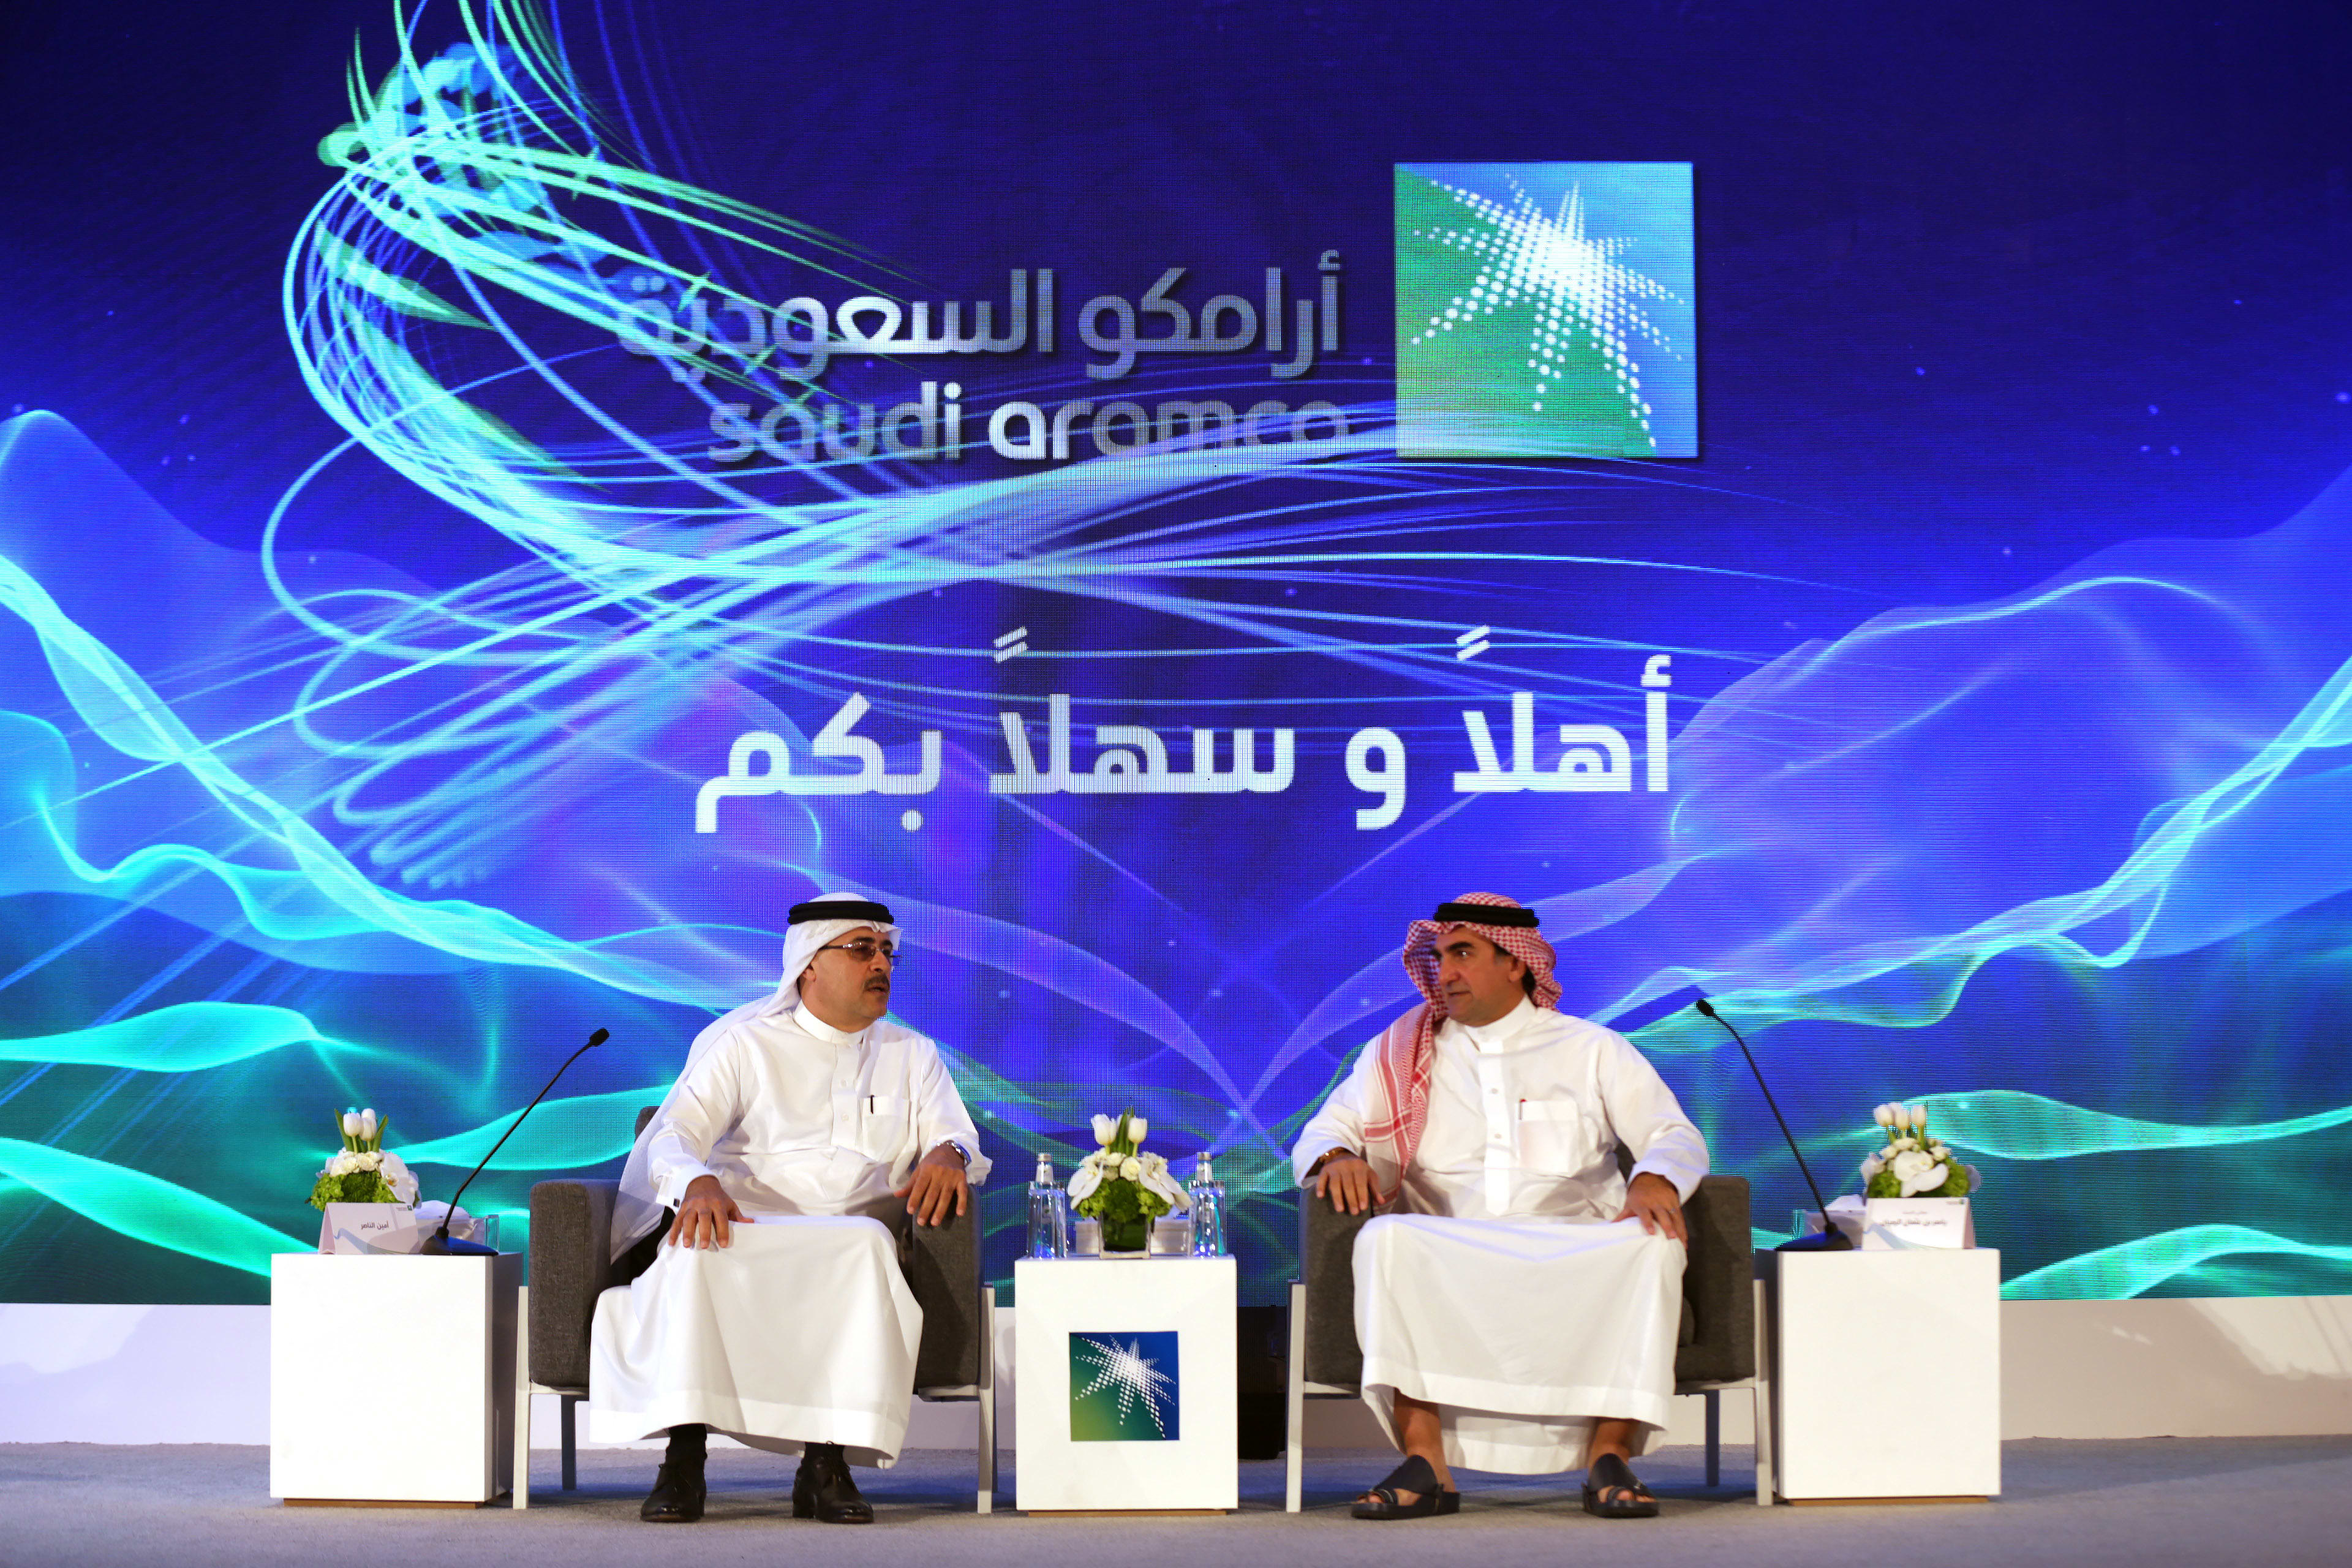 Aramco investors should consider Saudi Arabia's 'control' and 'influence,' analysts say